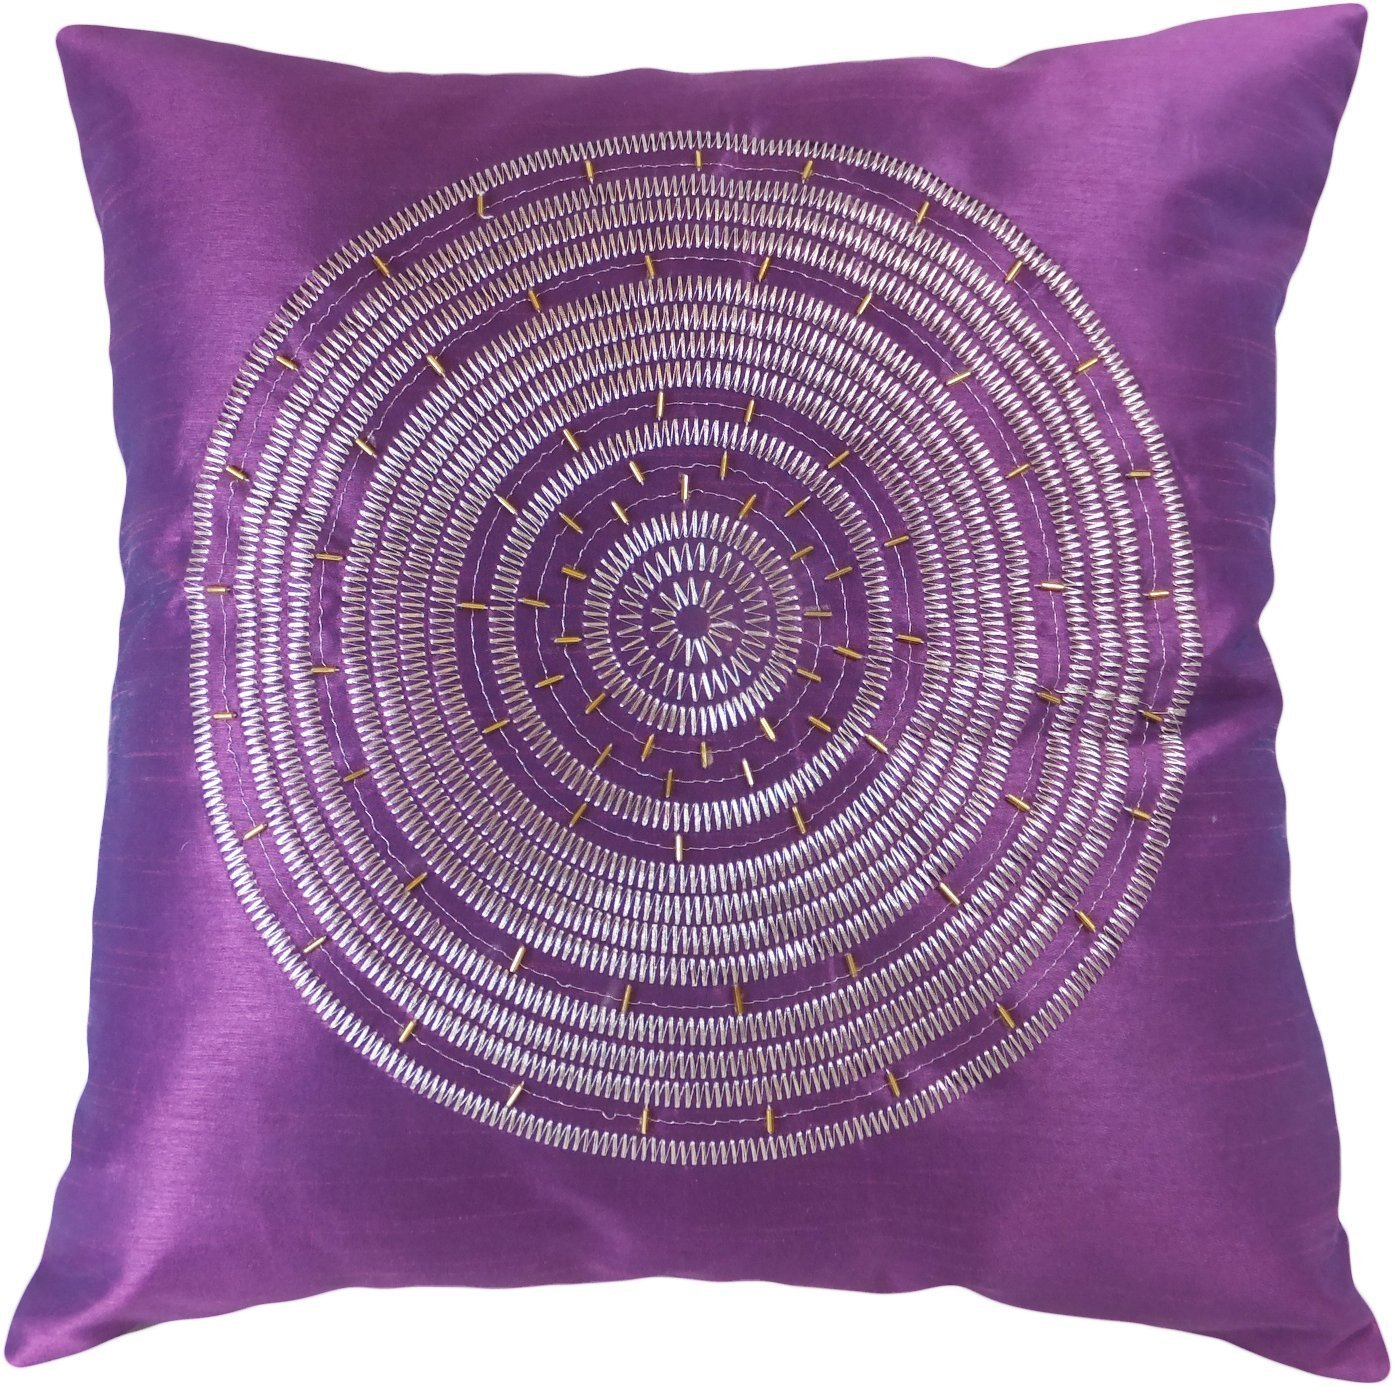 amazoncom decorative emboirdery  beads floral throw pillow  - amazoncom decorative emboirdery  beads floral throw pillow cover purple home  kitchen